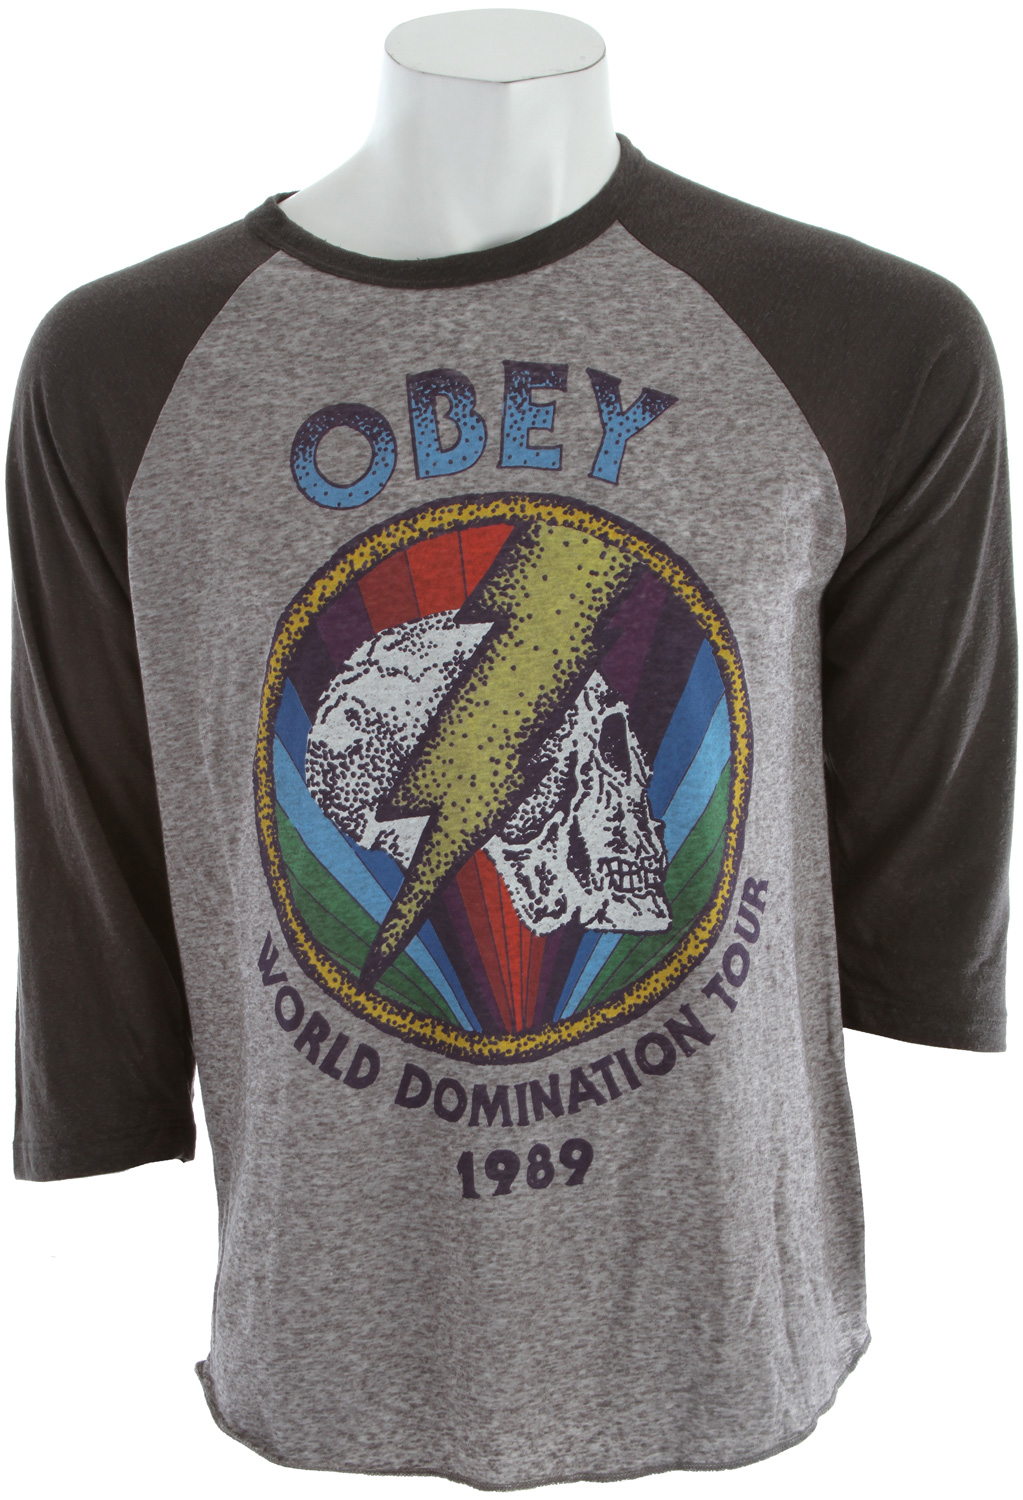 Sports Key Features of The Obey World Tour 1989 T-Shirt: Regular Fit Crew Neck Short Sleeve Lightweight, baseball raglan with graphic screen print on chest Nubby fabric for an extra vintage look and feel Sleeves are 3/4 length 75% polyester/25% cotton - $37.95